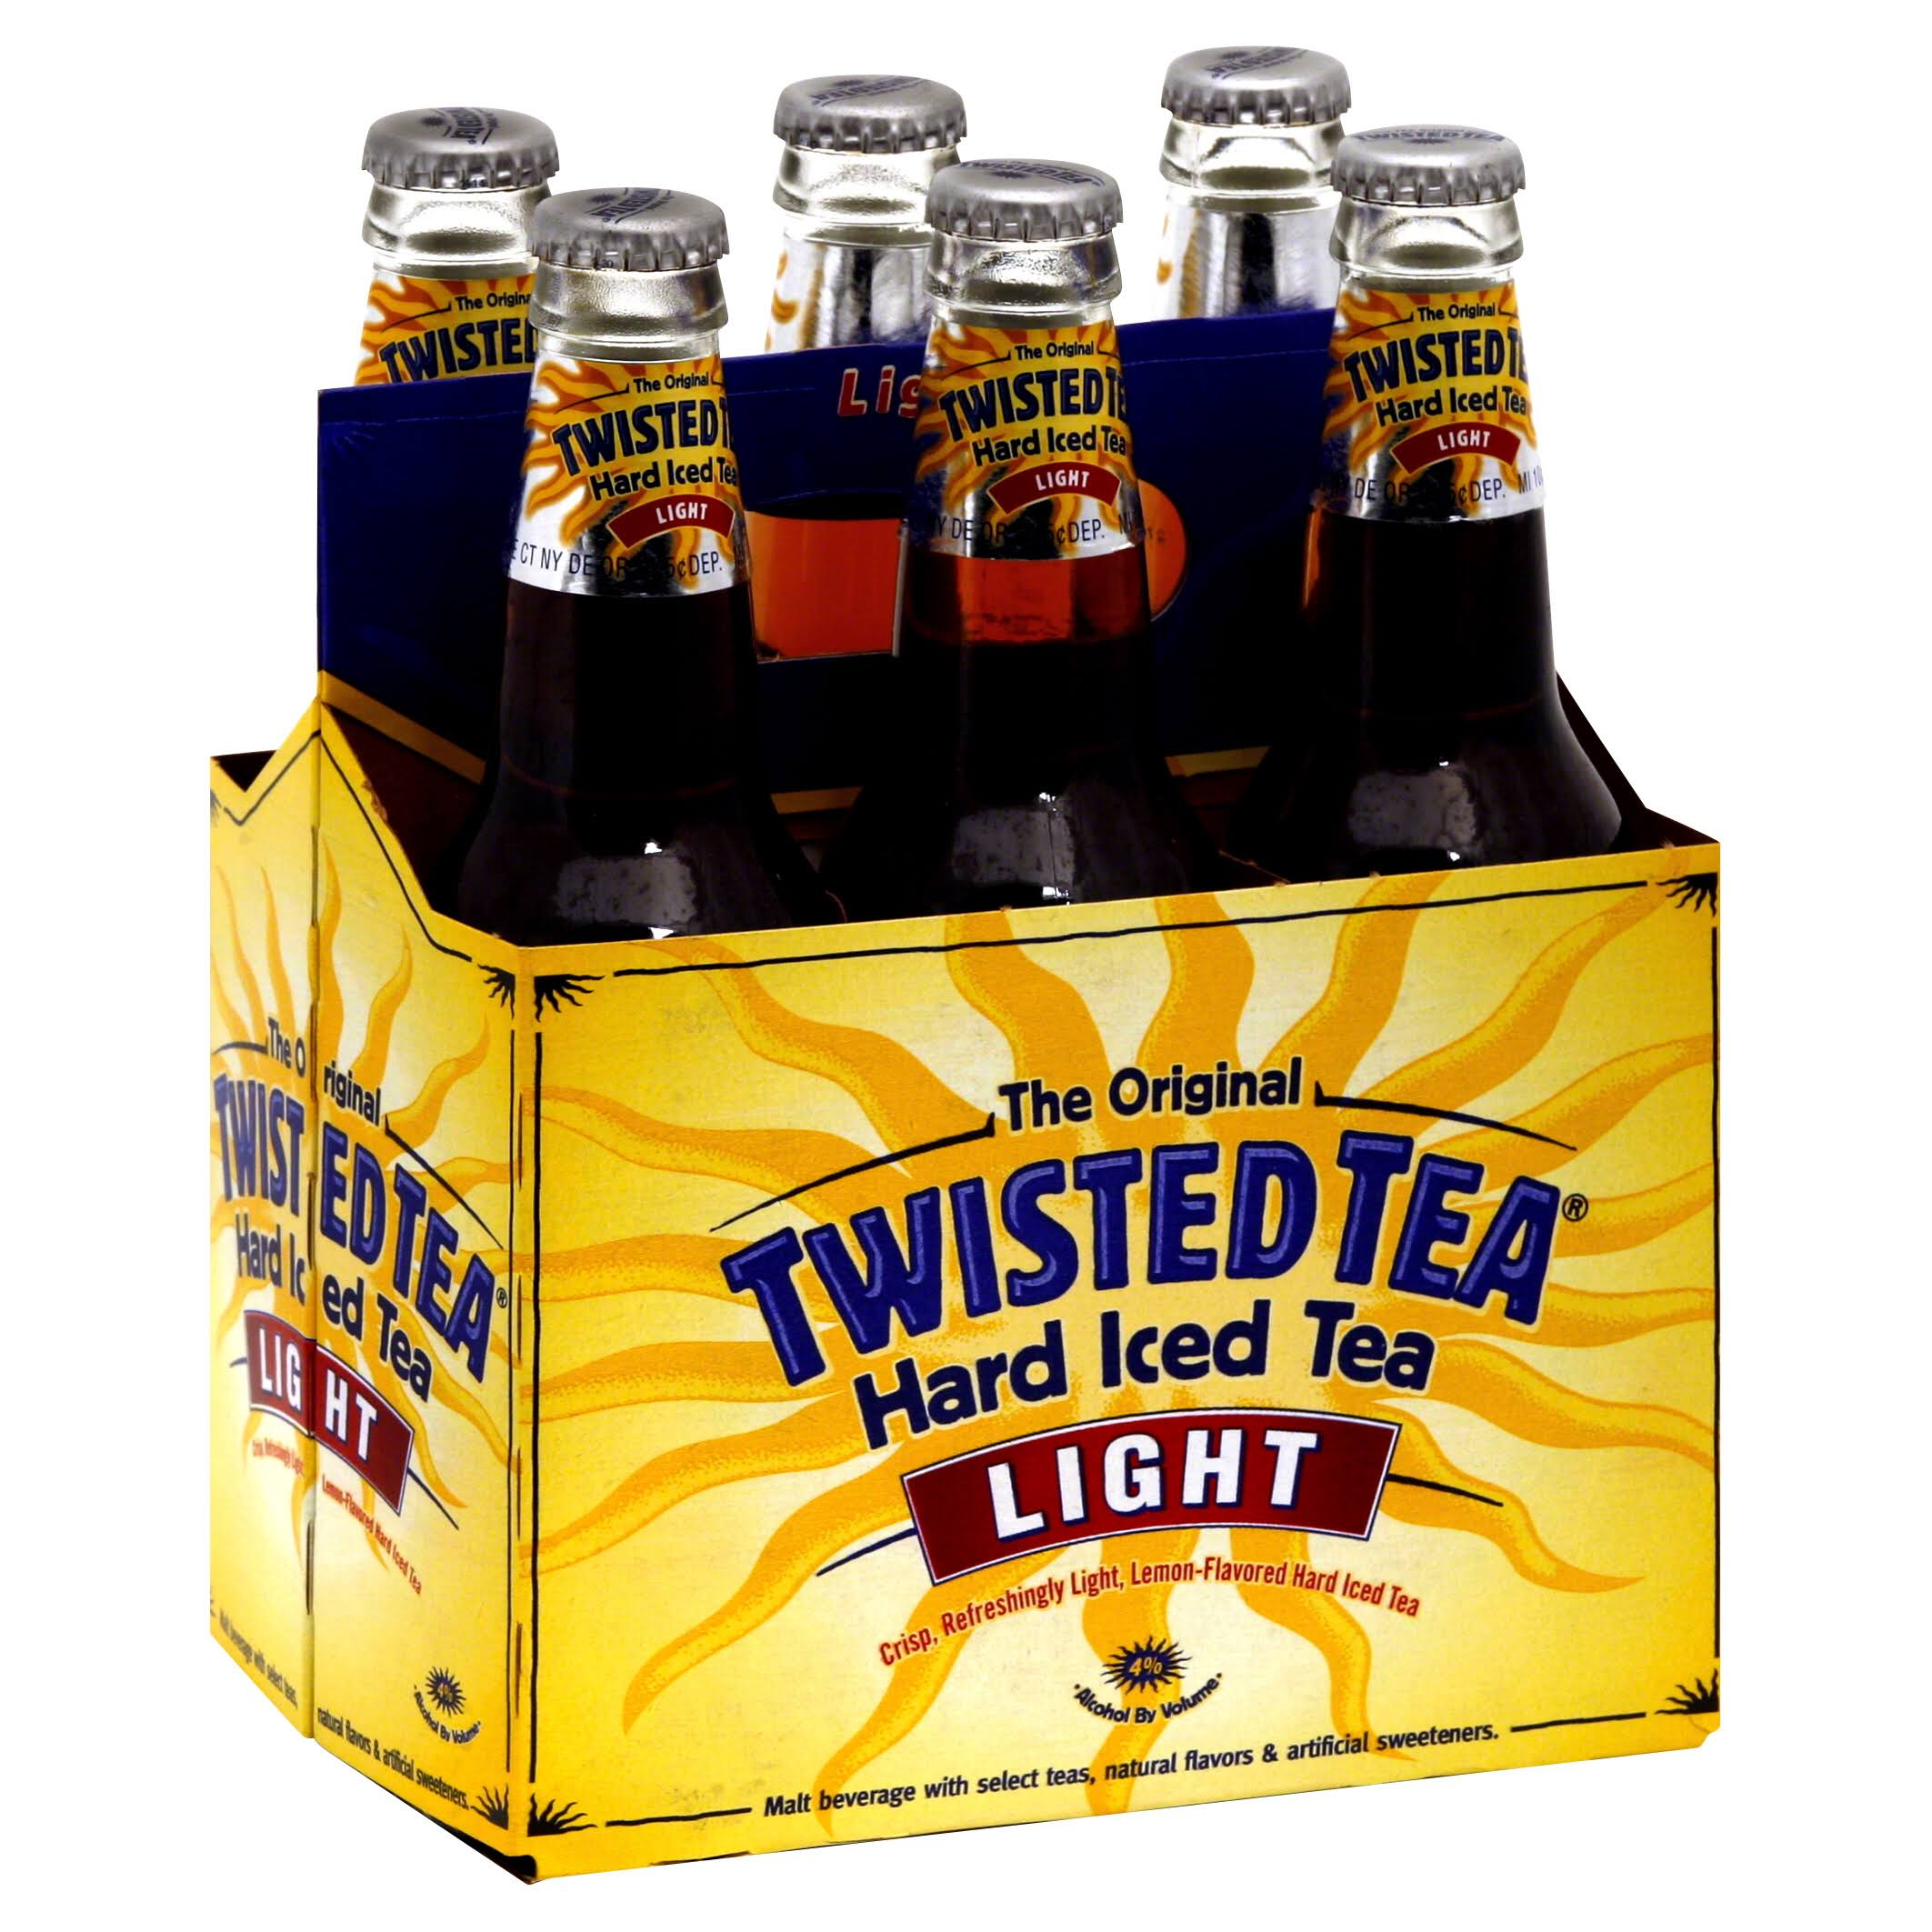 Twisted Tea Hard Light Iced Tea - 6 Pack